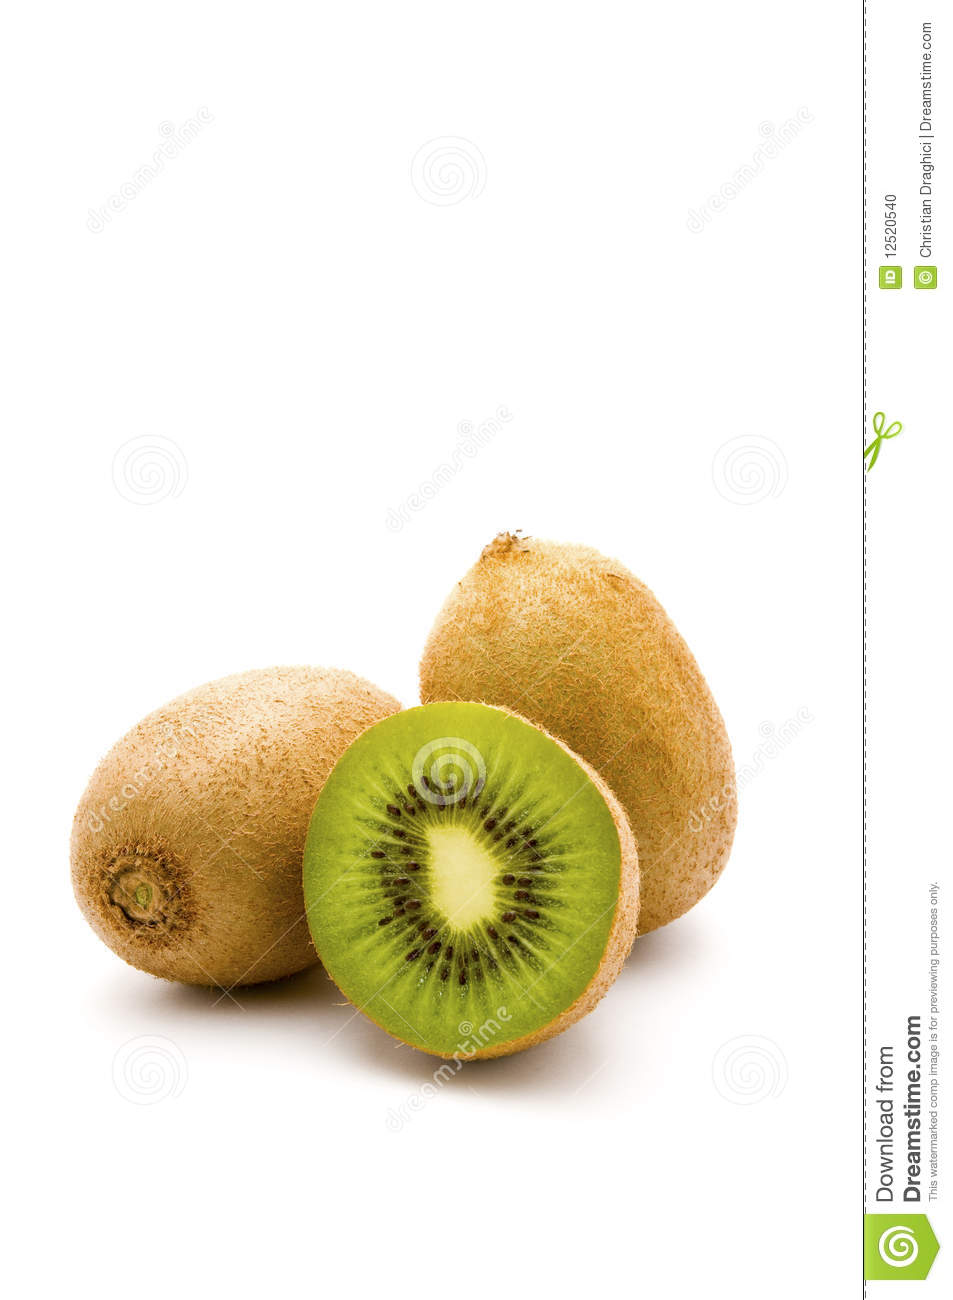 essay on kiwi fruit Zespri case analysis essay since the kiwifruit industry is currently in the maturity phase of the life cycle there are a lot of government regulations as well as a lot of competition with zespri a custom essay sample on zespri case analysis.